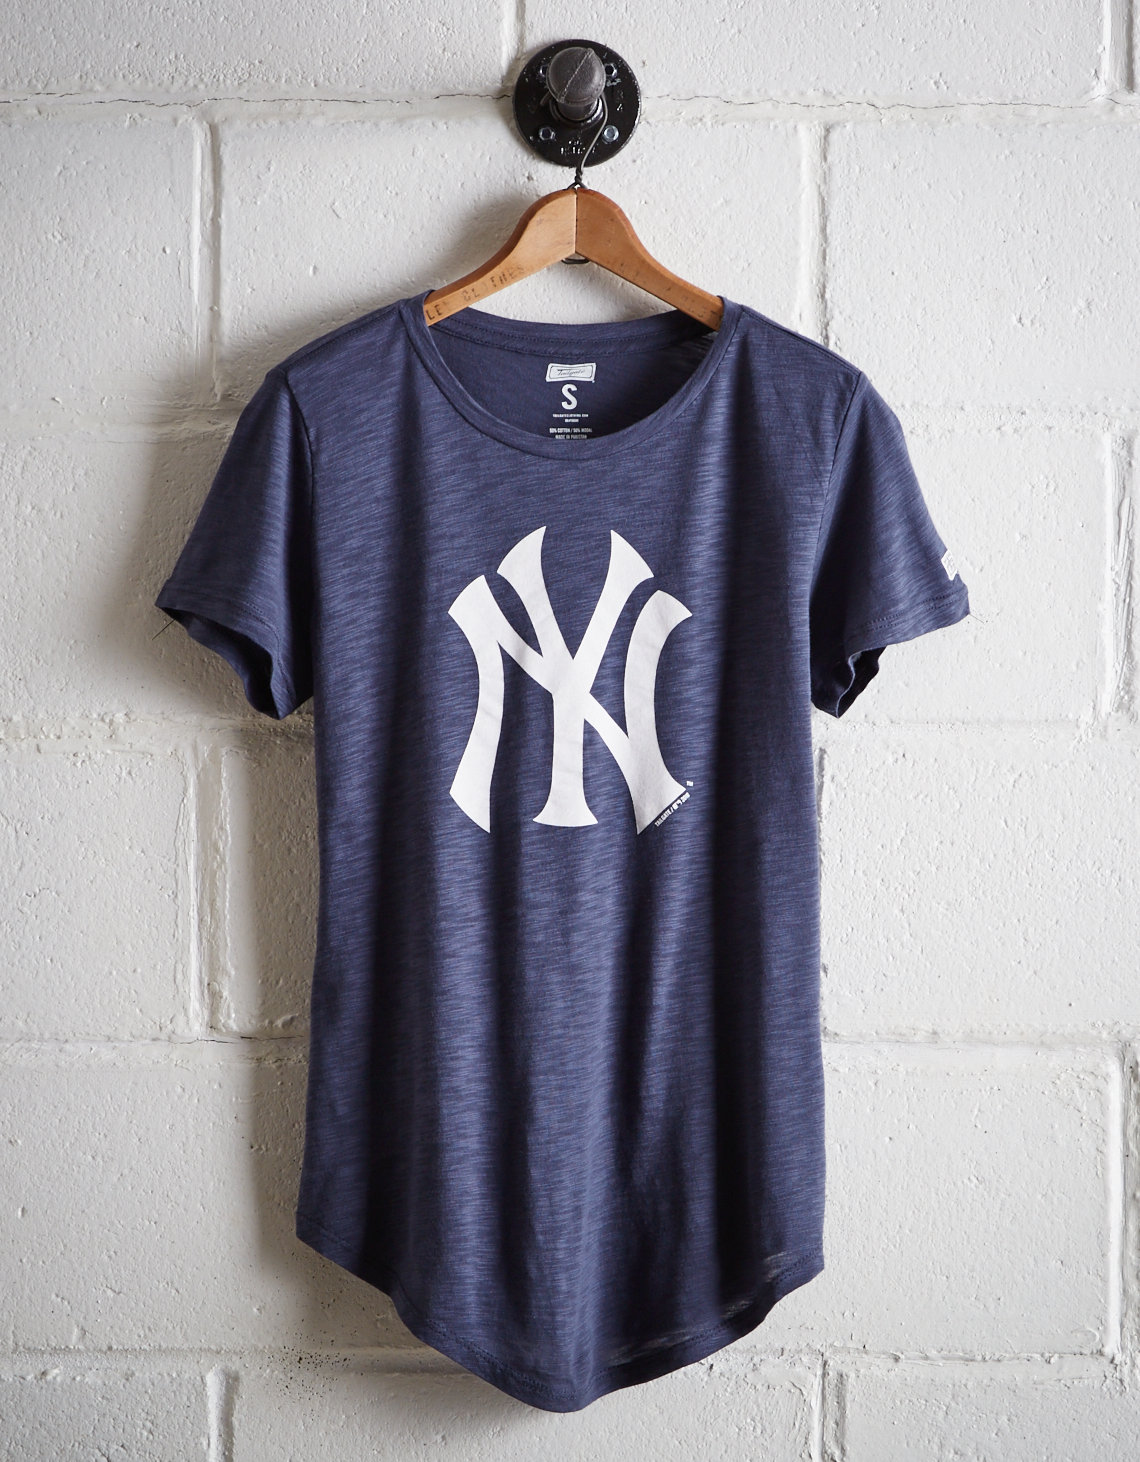 e914b021ad9da0 Tailgate Women s New York Yankees T-Shirt. Placeholder image. Product Image